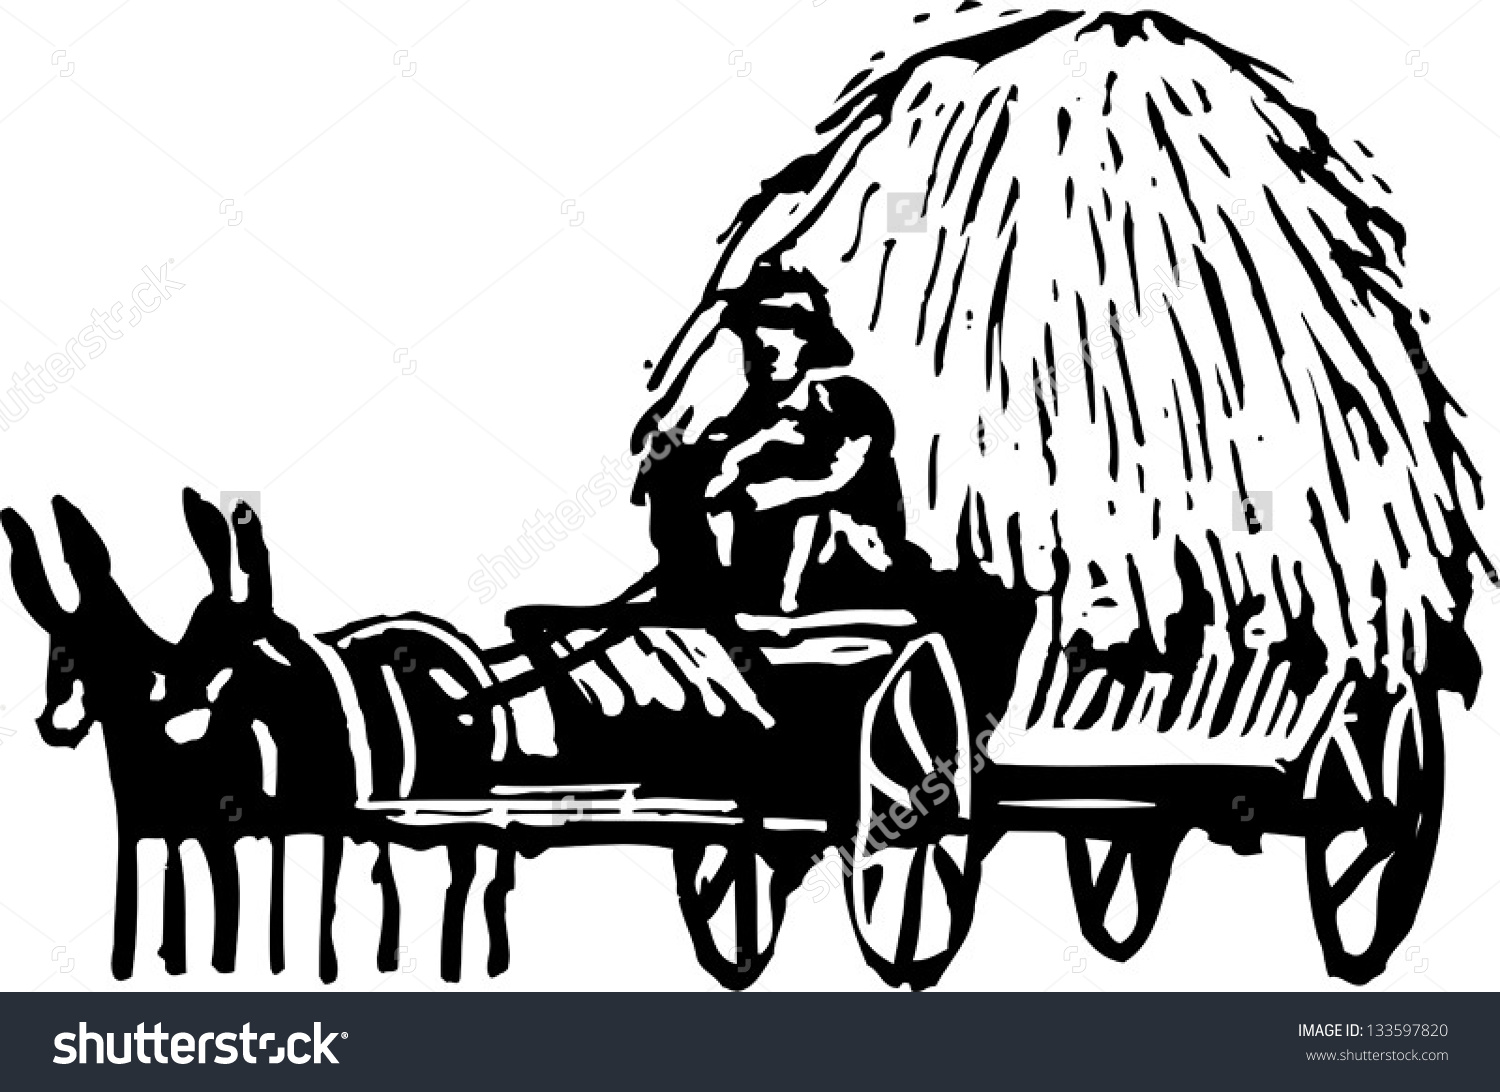 Black And White Vector Illustration Of Wagon With Hay.